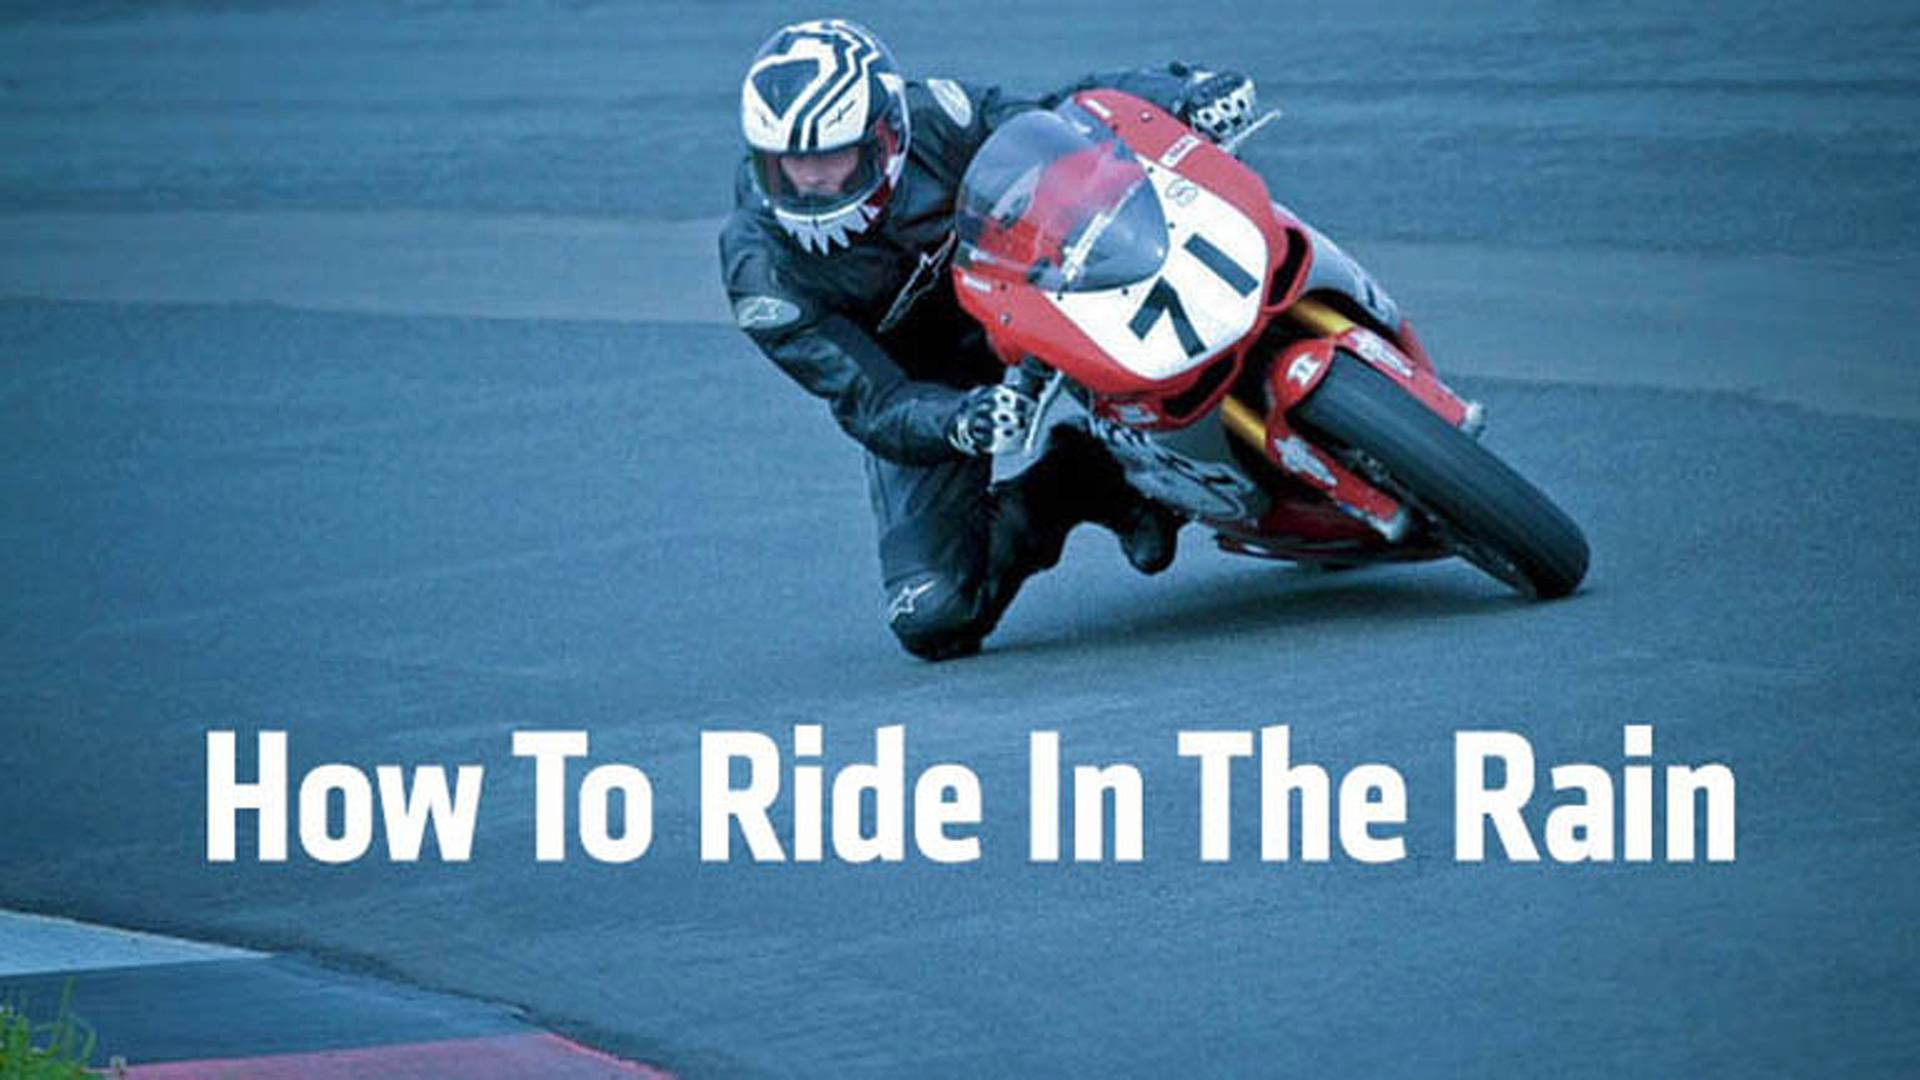 488085e3be3 Safety  How To Ride a Motorcycle In The Rain